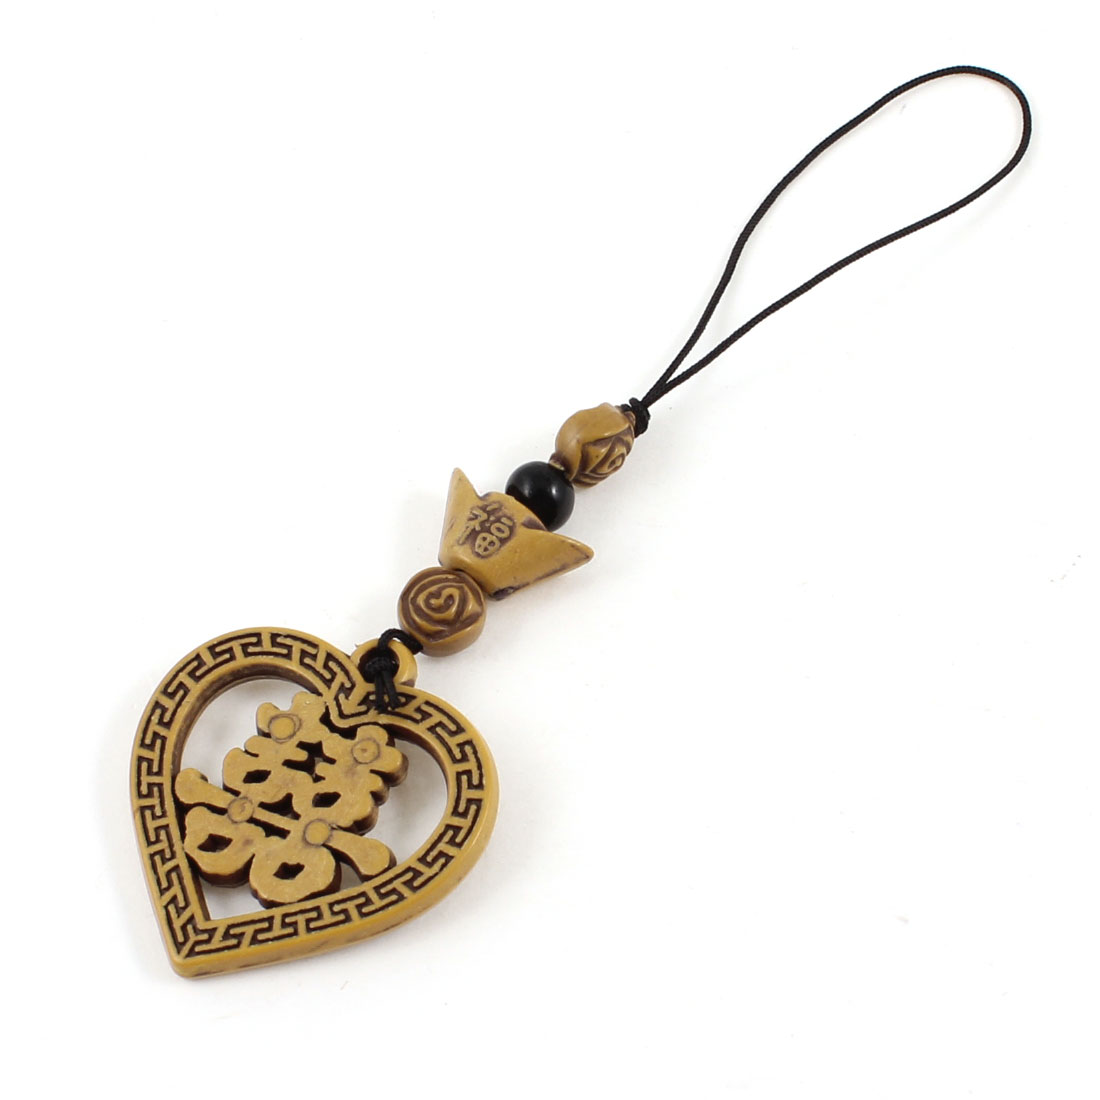 Double Happiness Shape Wood Pendant Ornament for Cell Phone Handbag Keychain